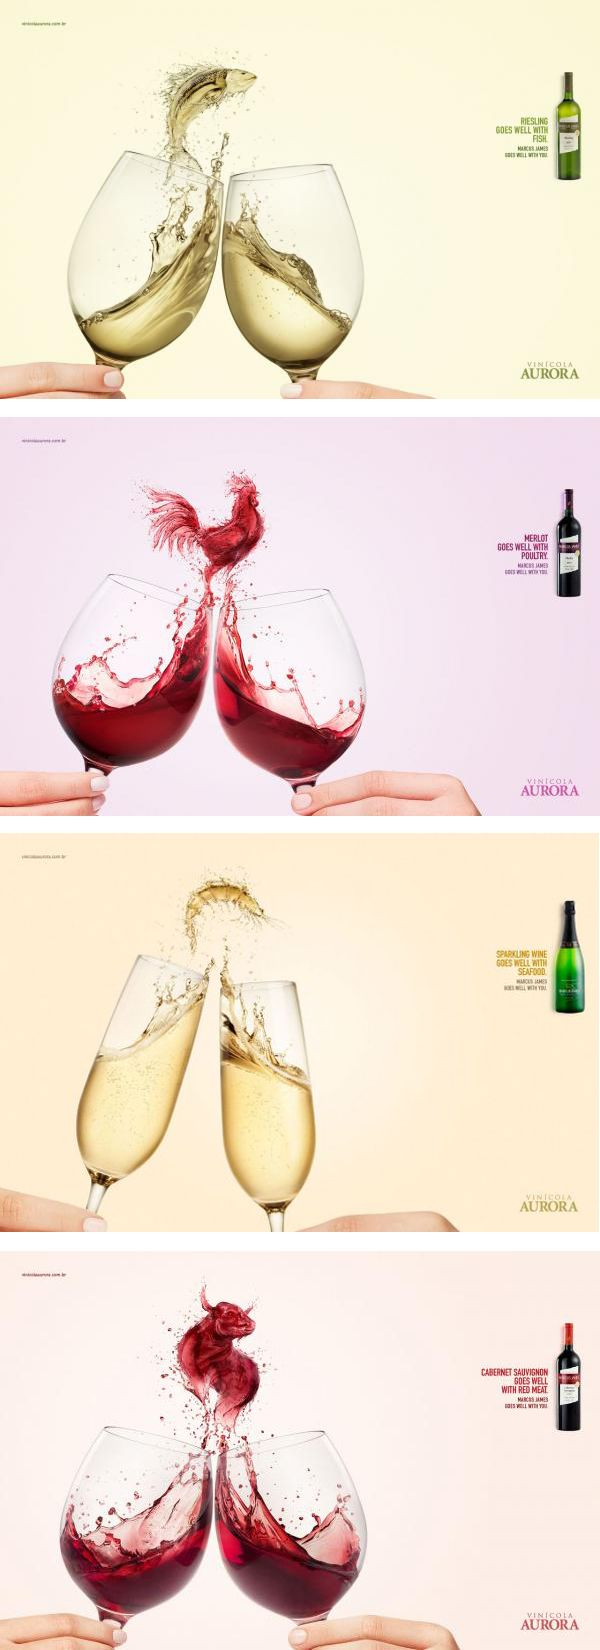 Campaign for Aurora Wines PD